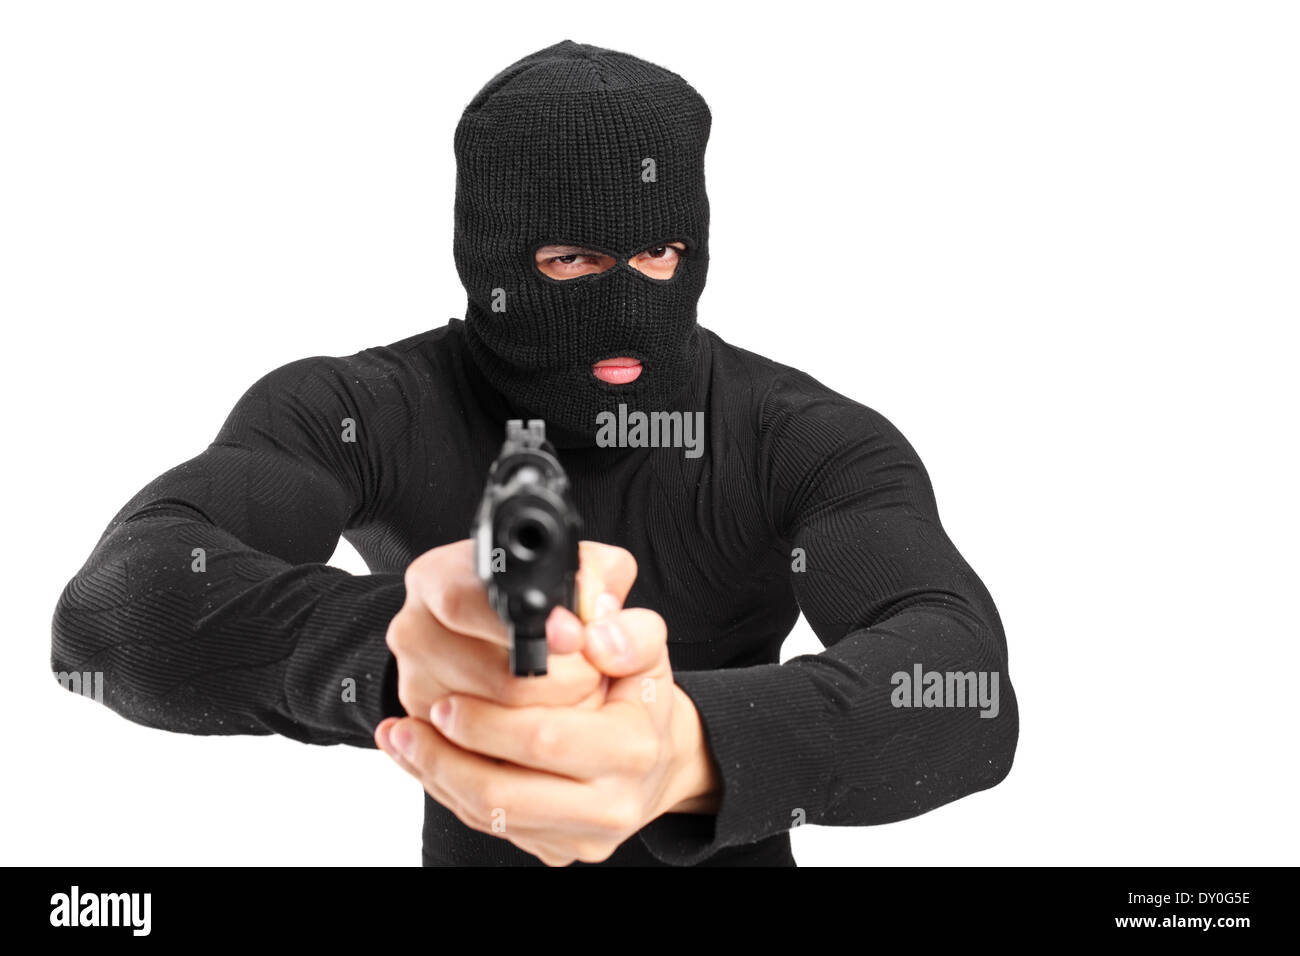 Man with a mask holding a gun - Stock Image